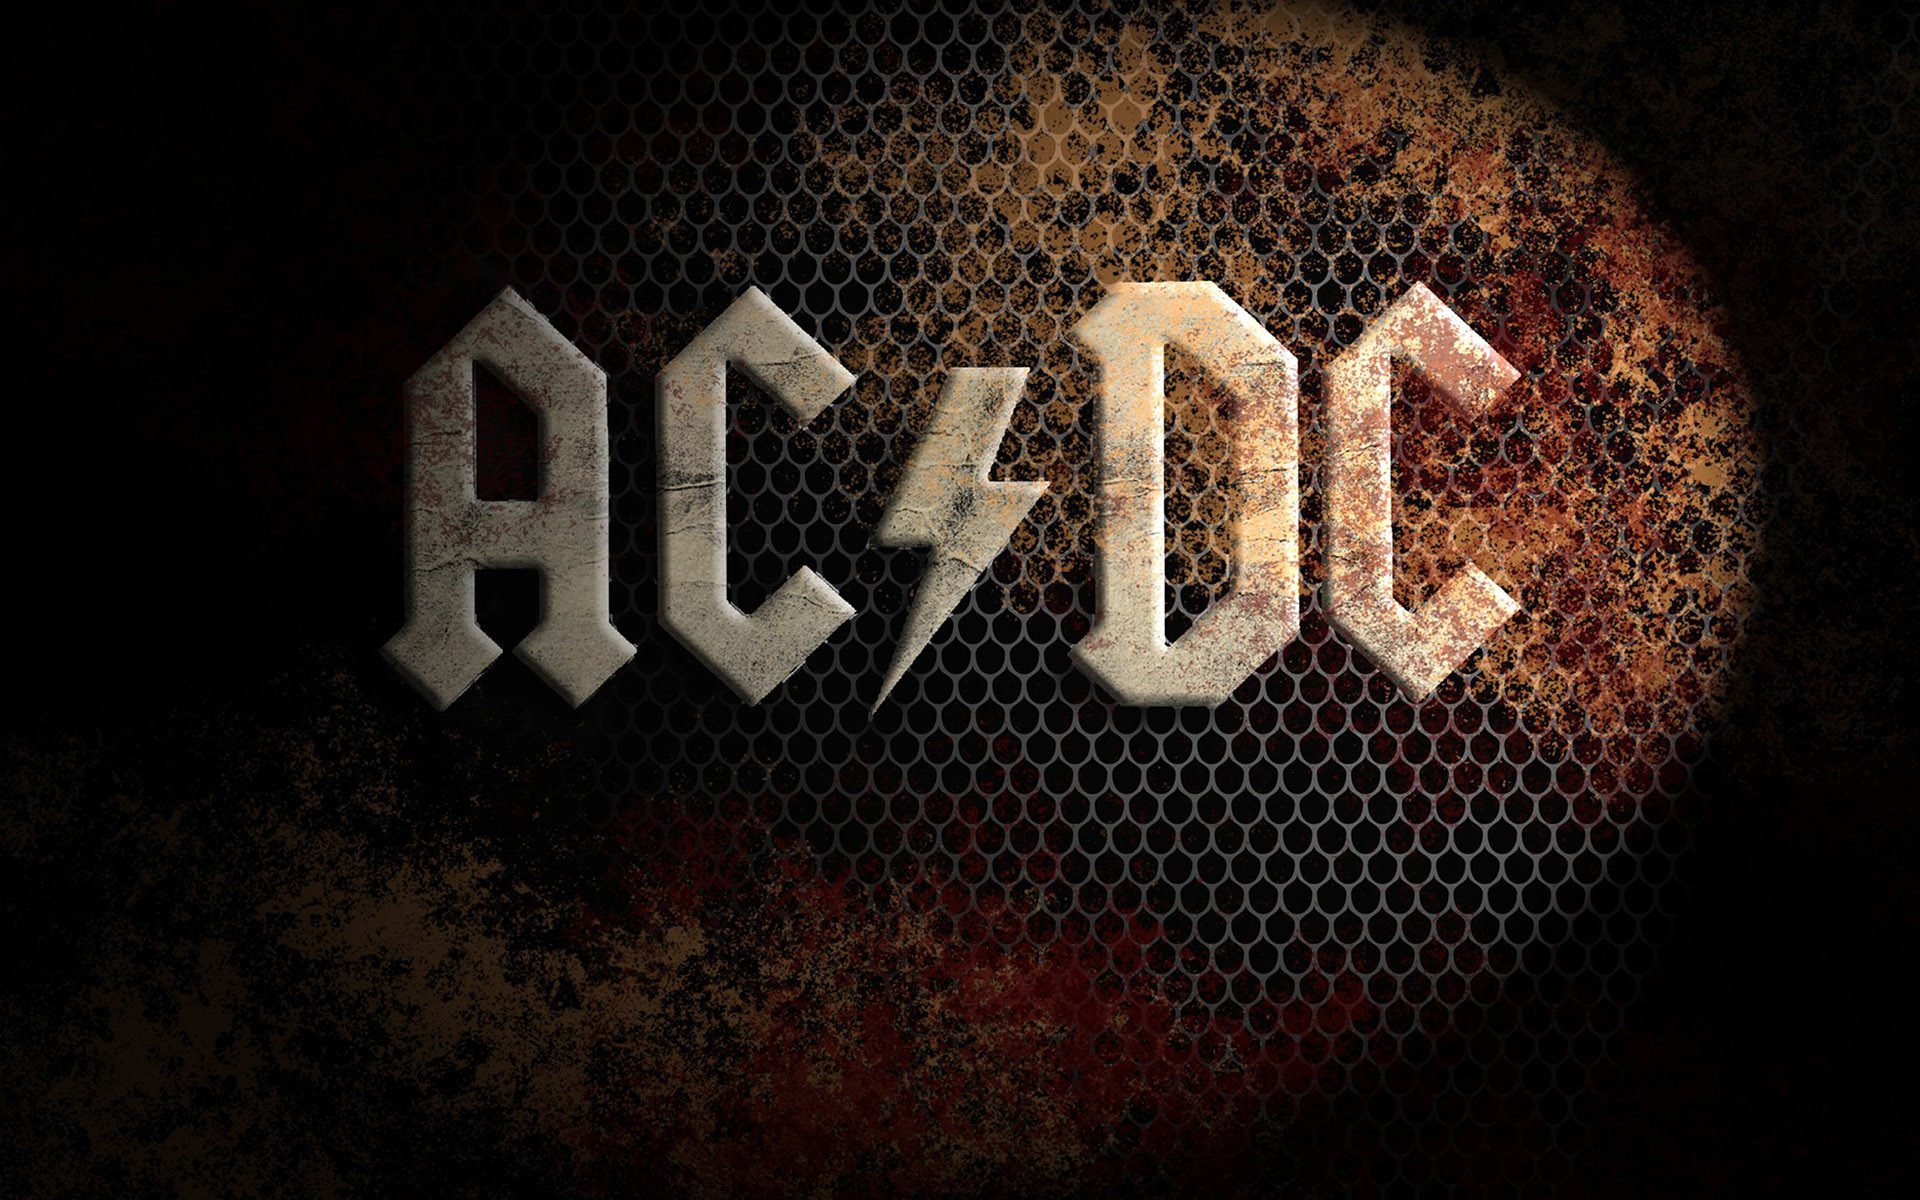 … AC/DC HD Wallpaper 1920×1200